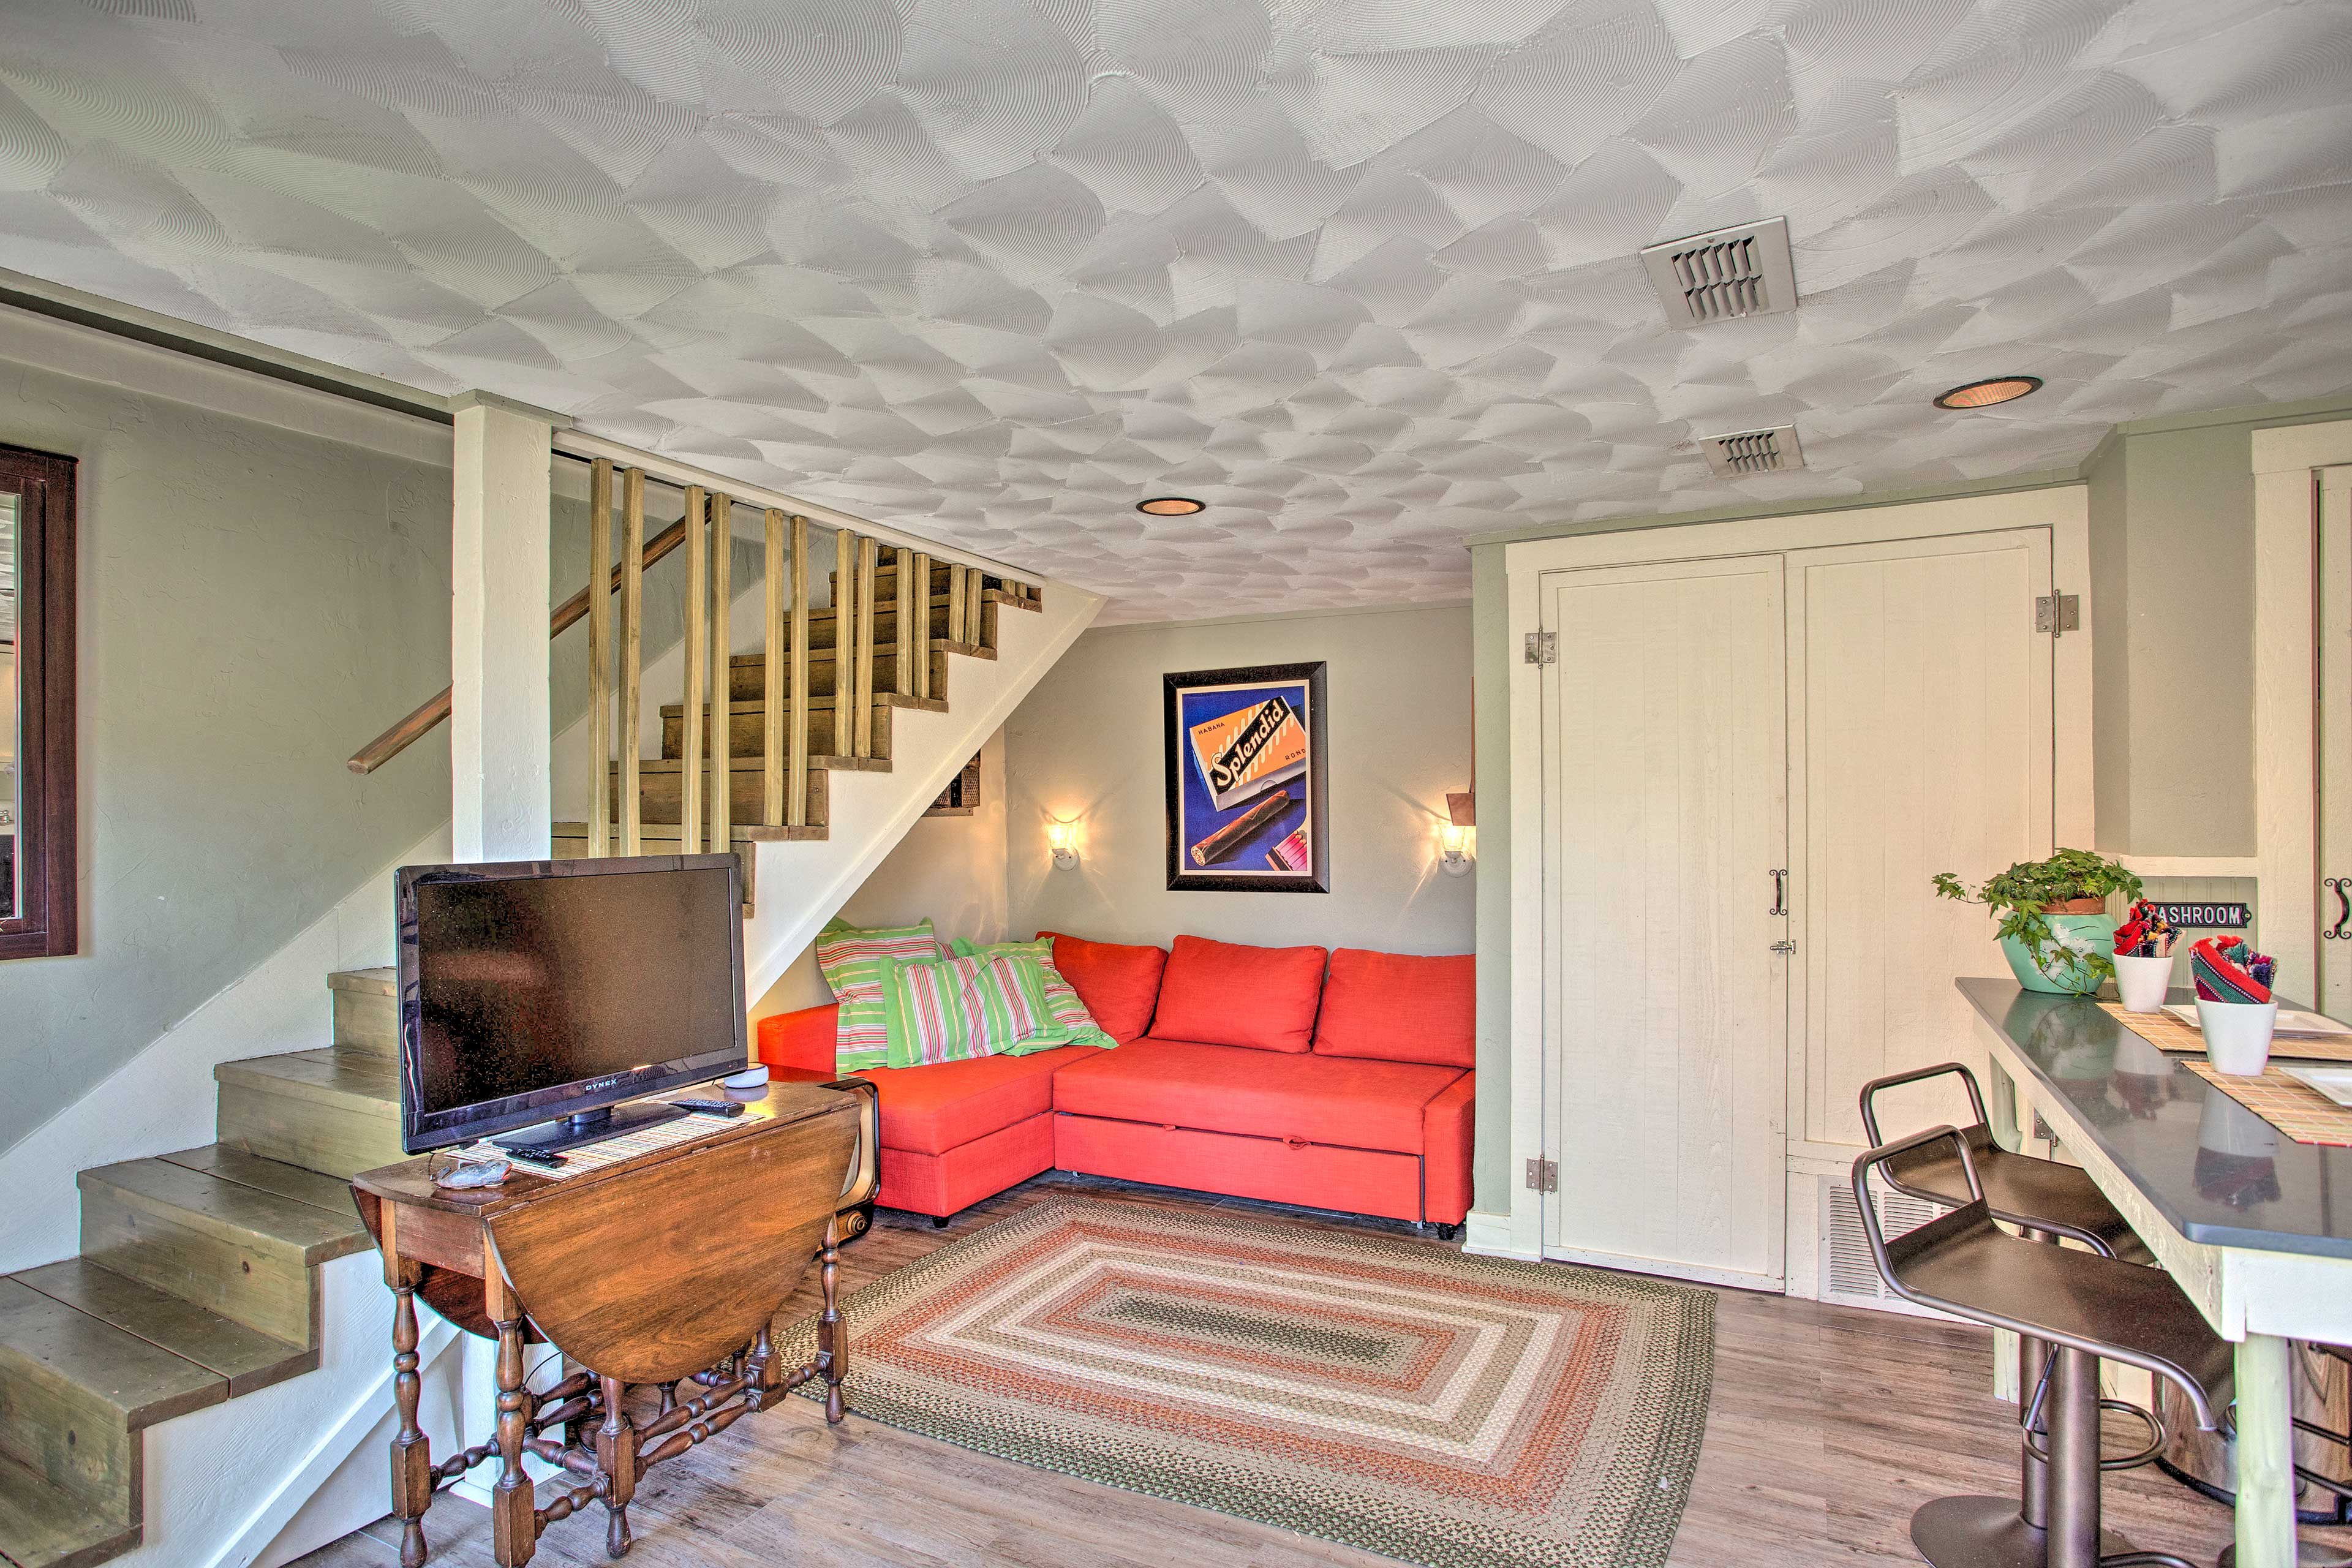 'The Quarters at Fairmount' offers 4 guests a stay in the historic district.